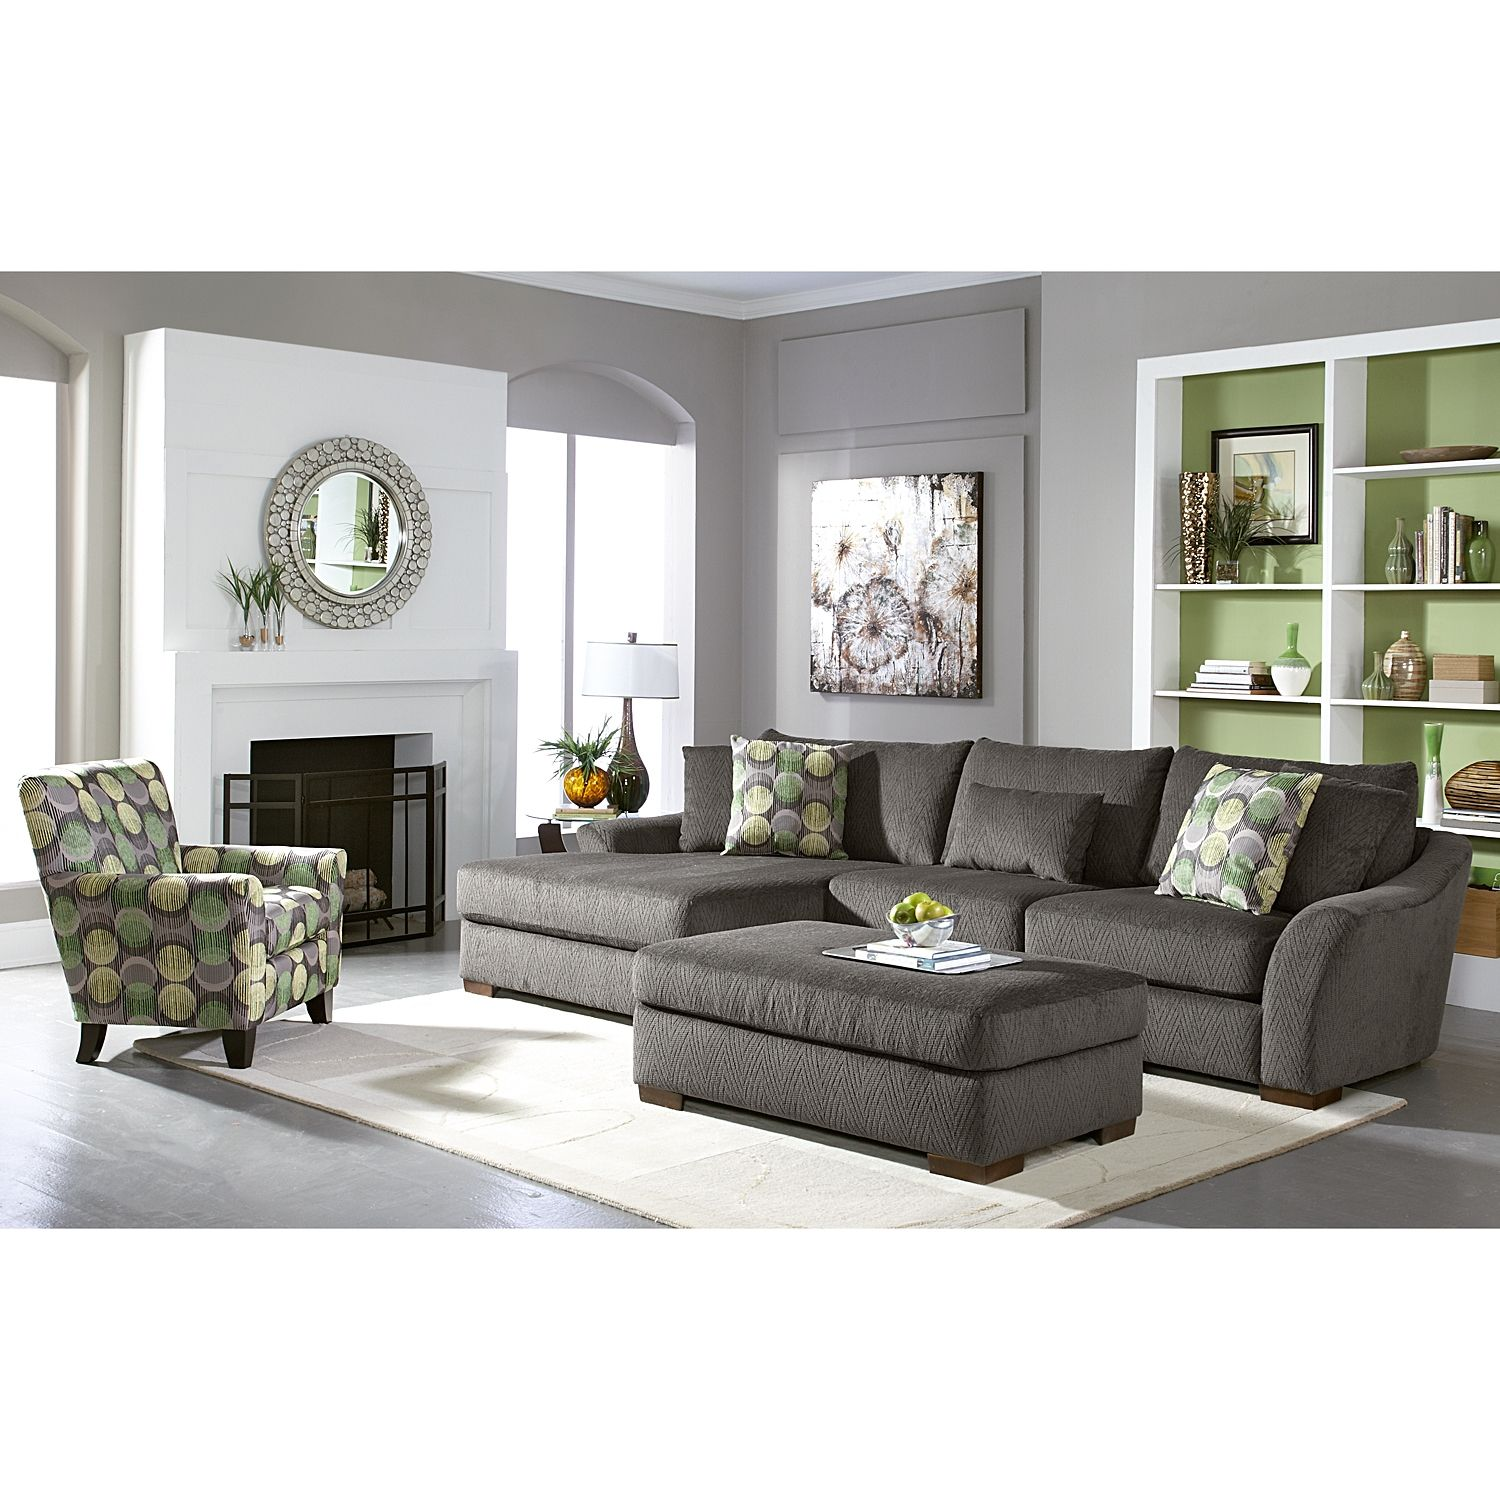 Grey Sofa Decor Ideas Parker Reclining Reviews Living Room Furniture Orleans Gray 2 Pc Sectional La